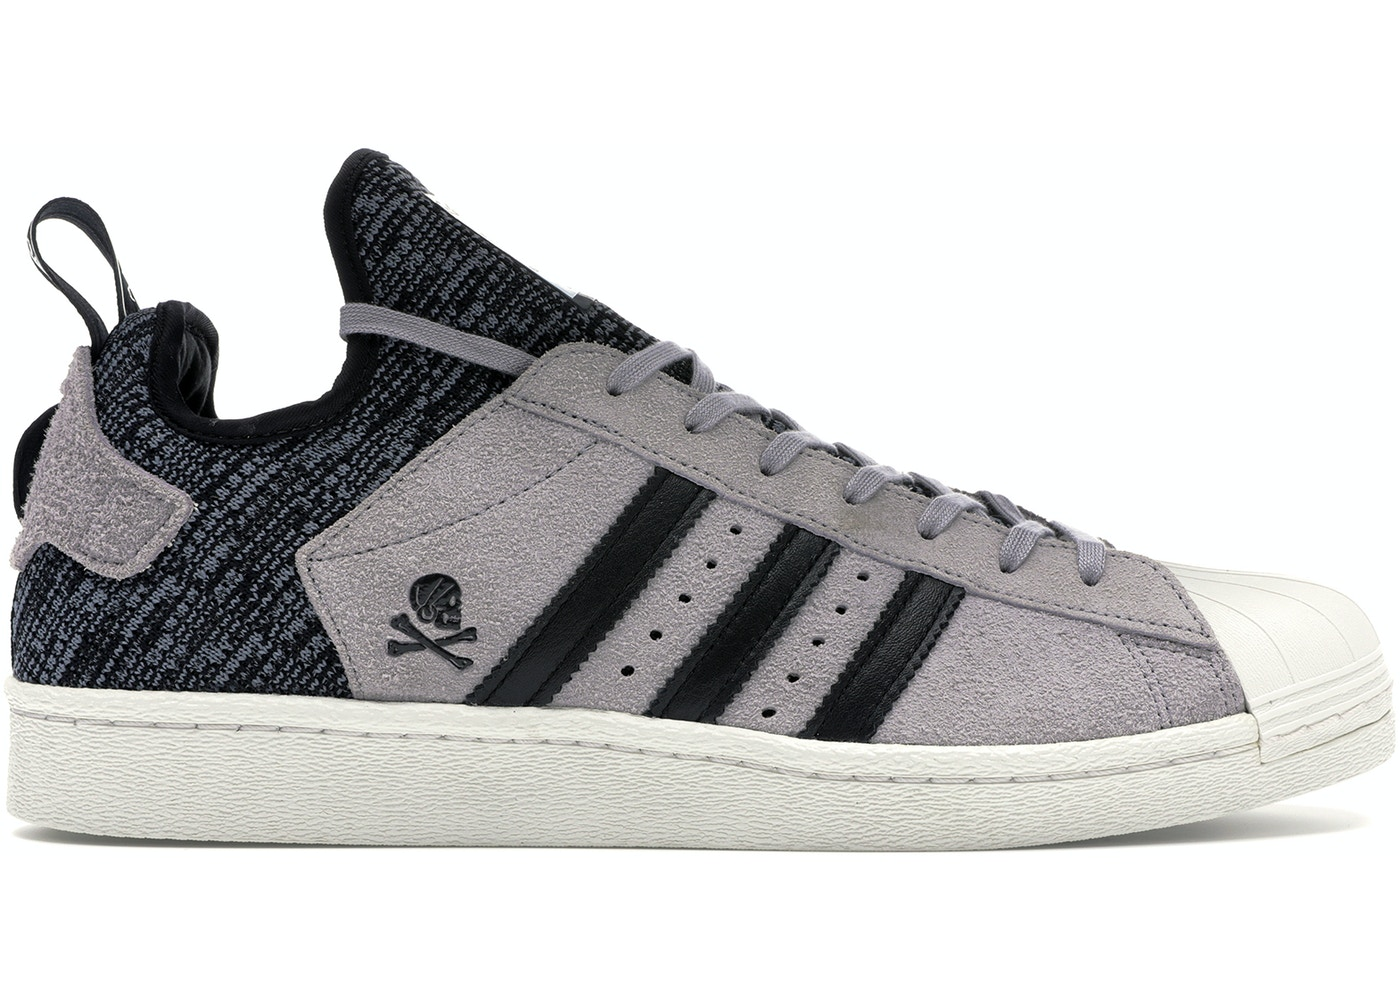 online retailer f3d8c fbba5 adidas Superstar Boost Bape X Neighborhood